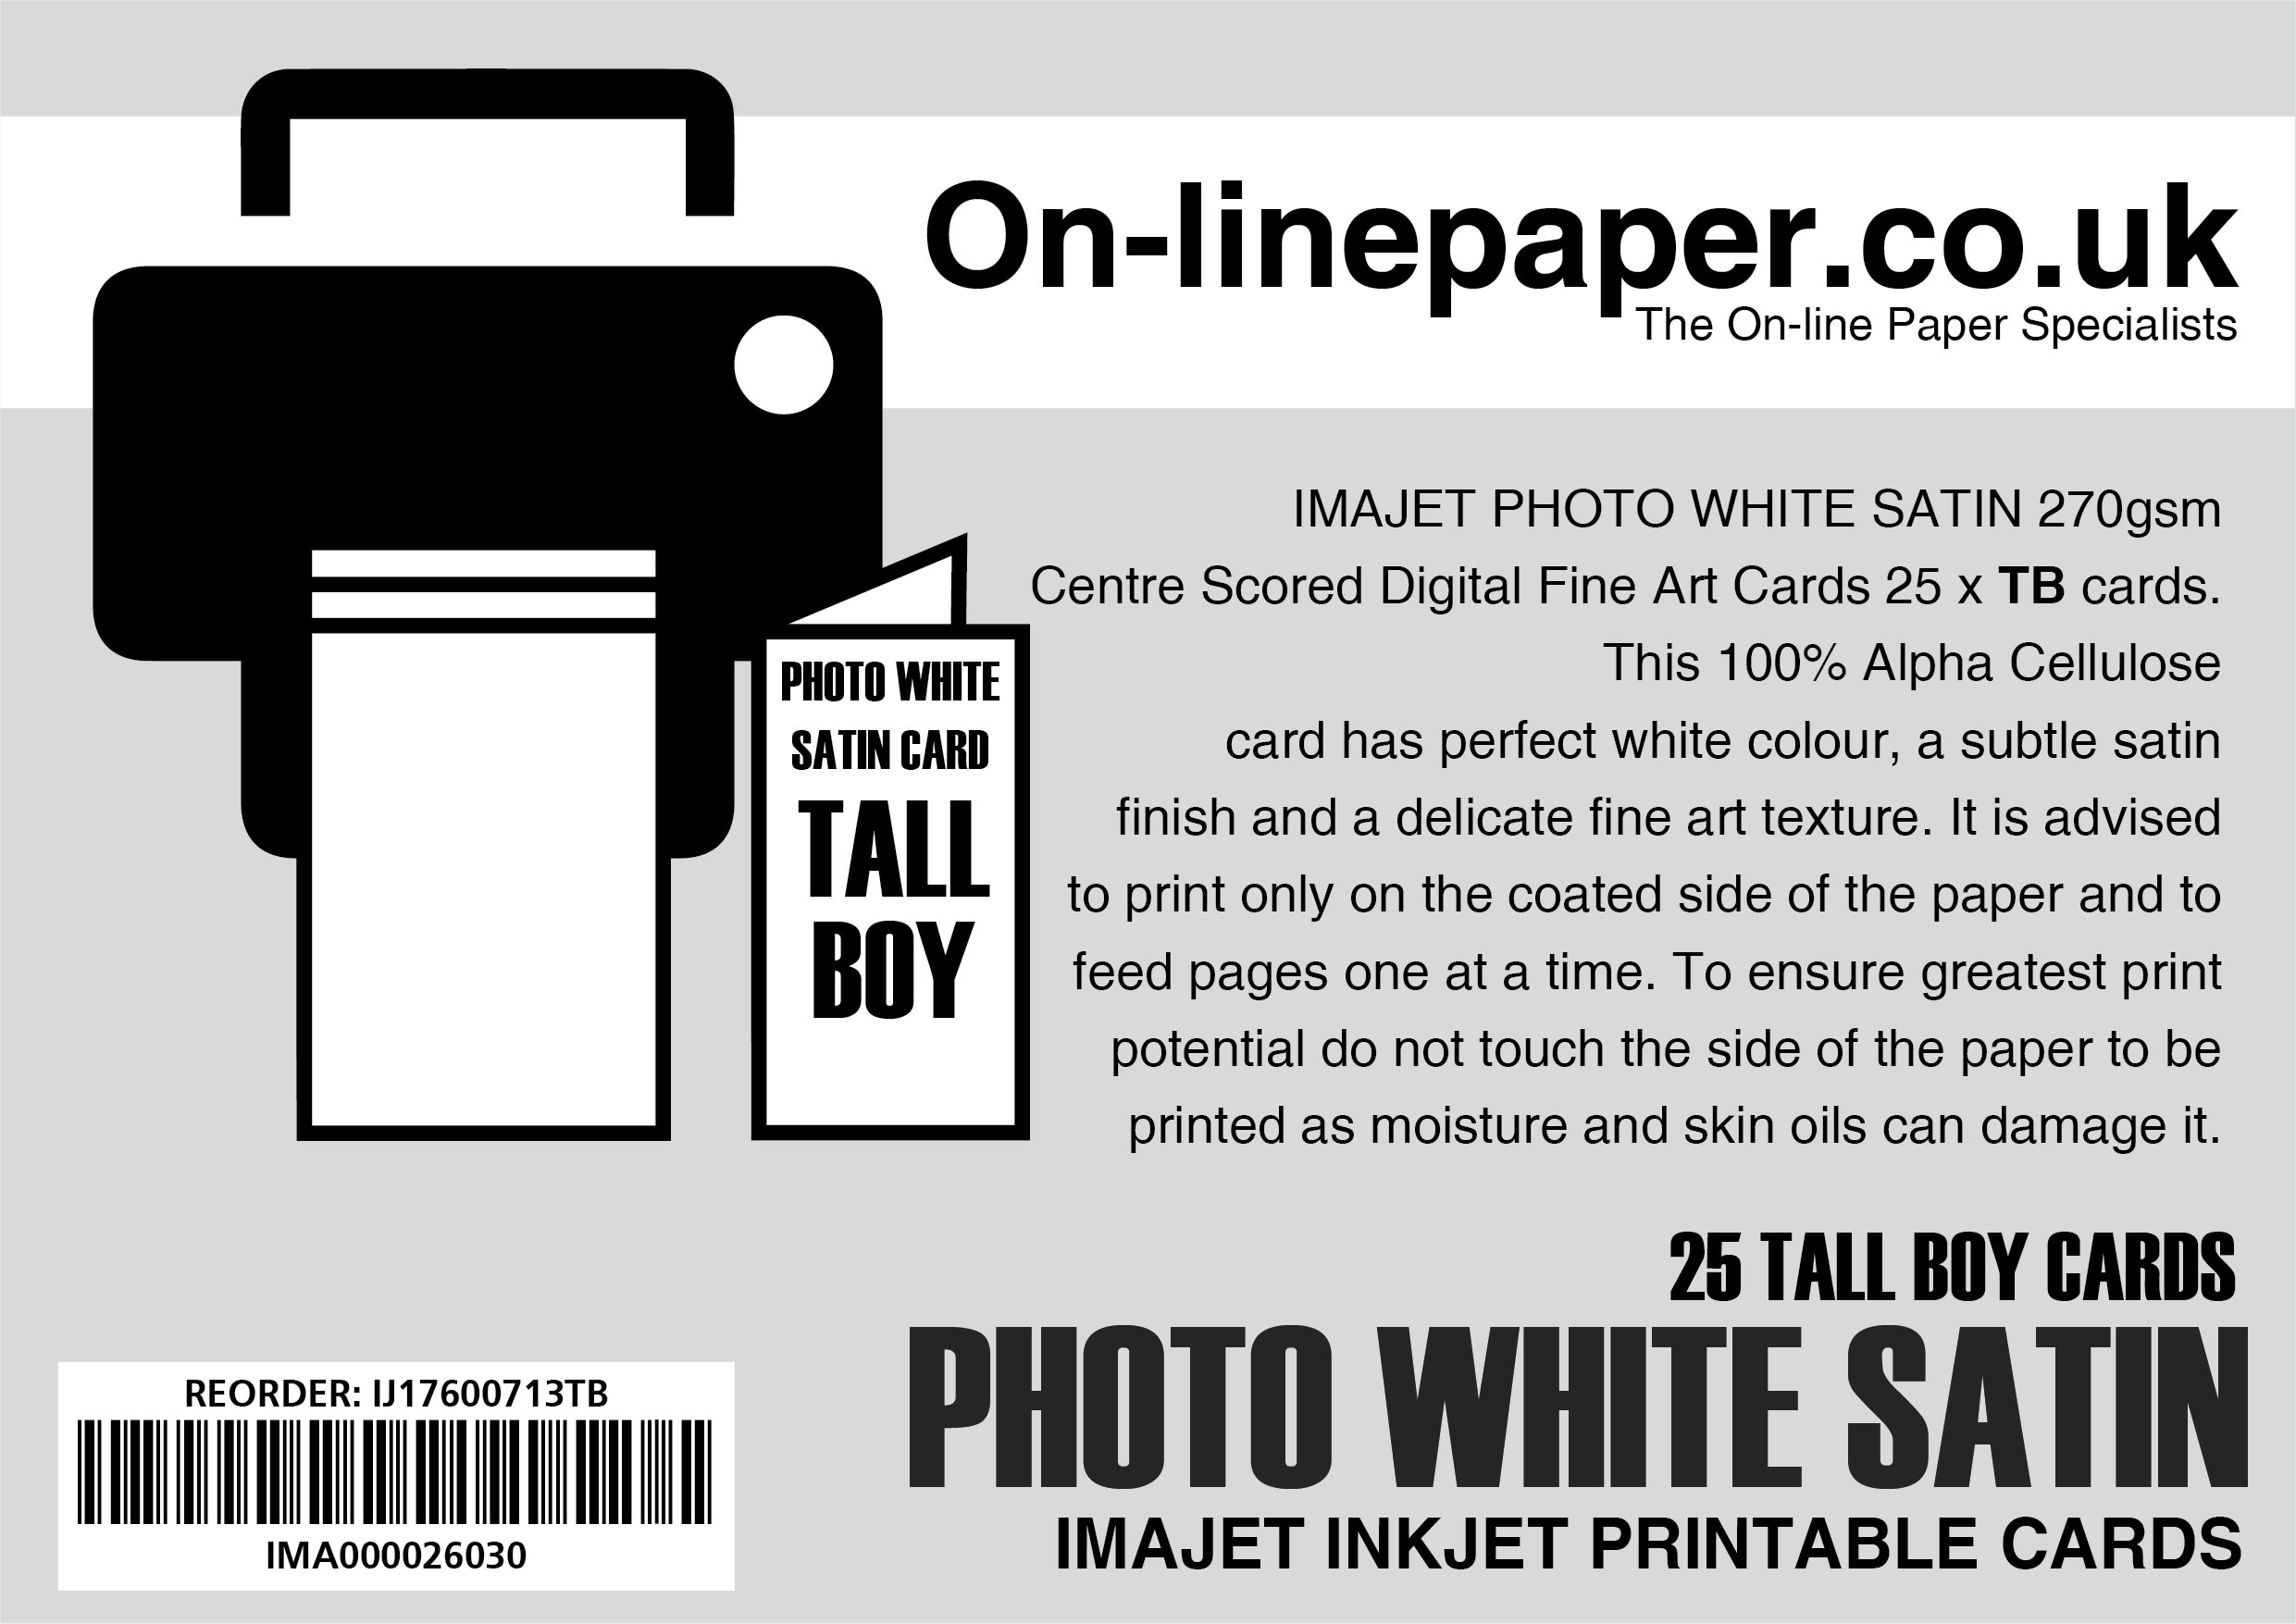 IMAJET PHOTO WHITE SATIN 270gsm Centre Scored Digital Fine Art Cards 25 x Tall Boy